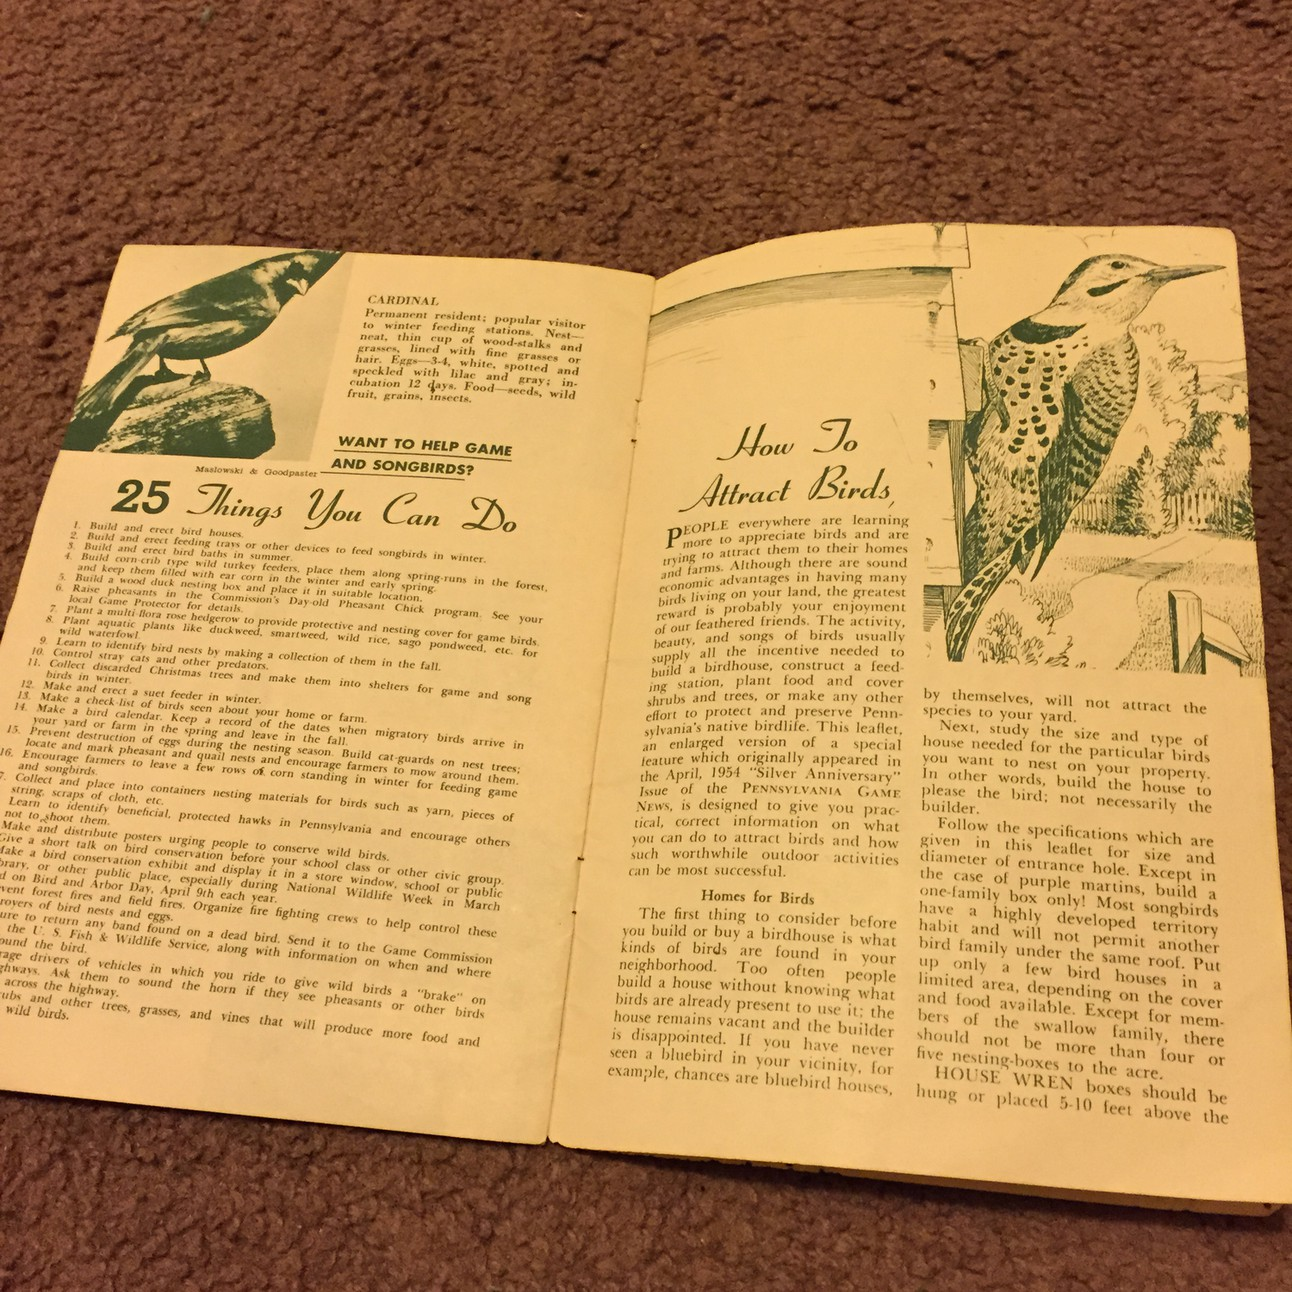 25 Well Known Pennsylvania Birds - 1954 PA Game Commission